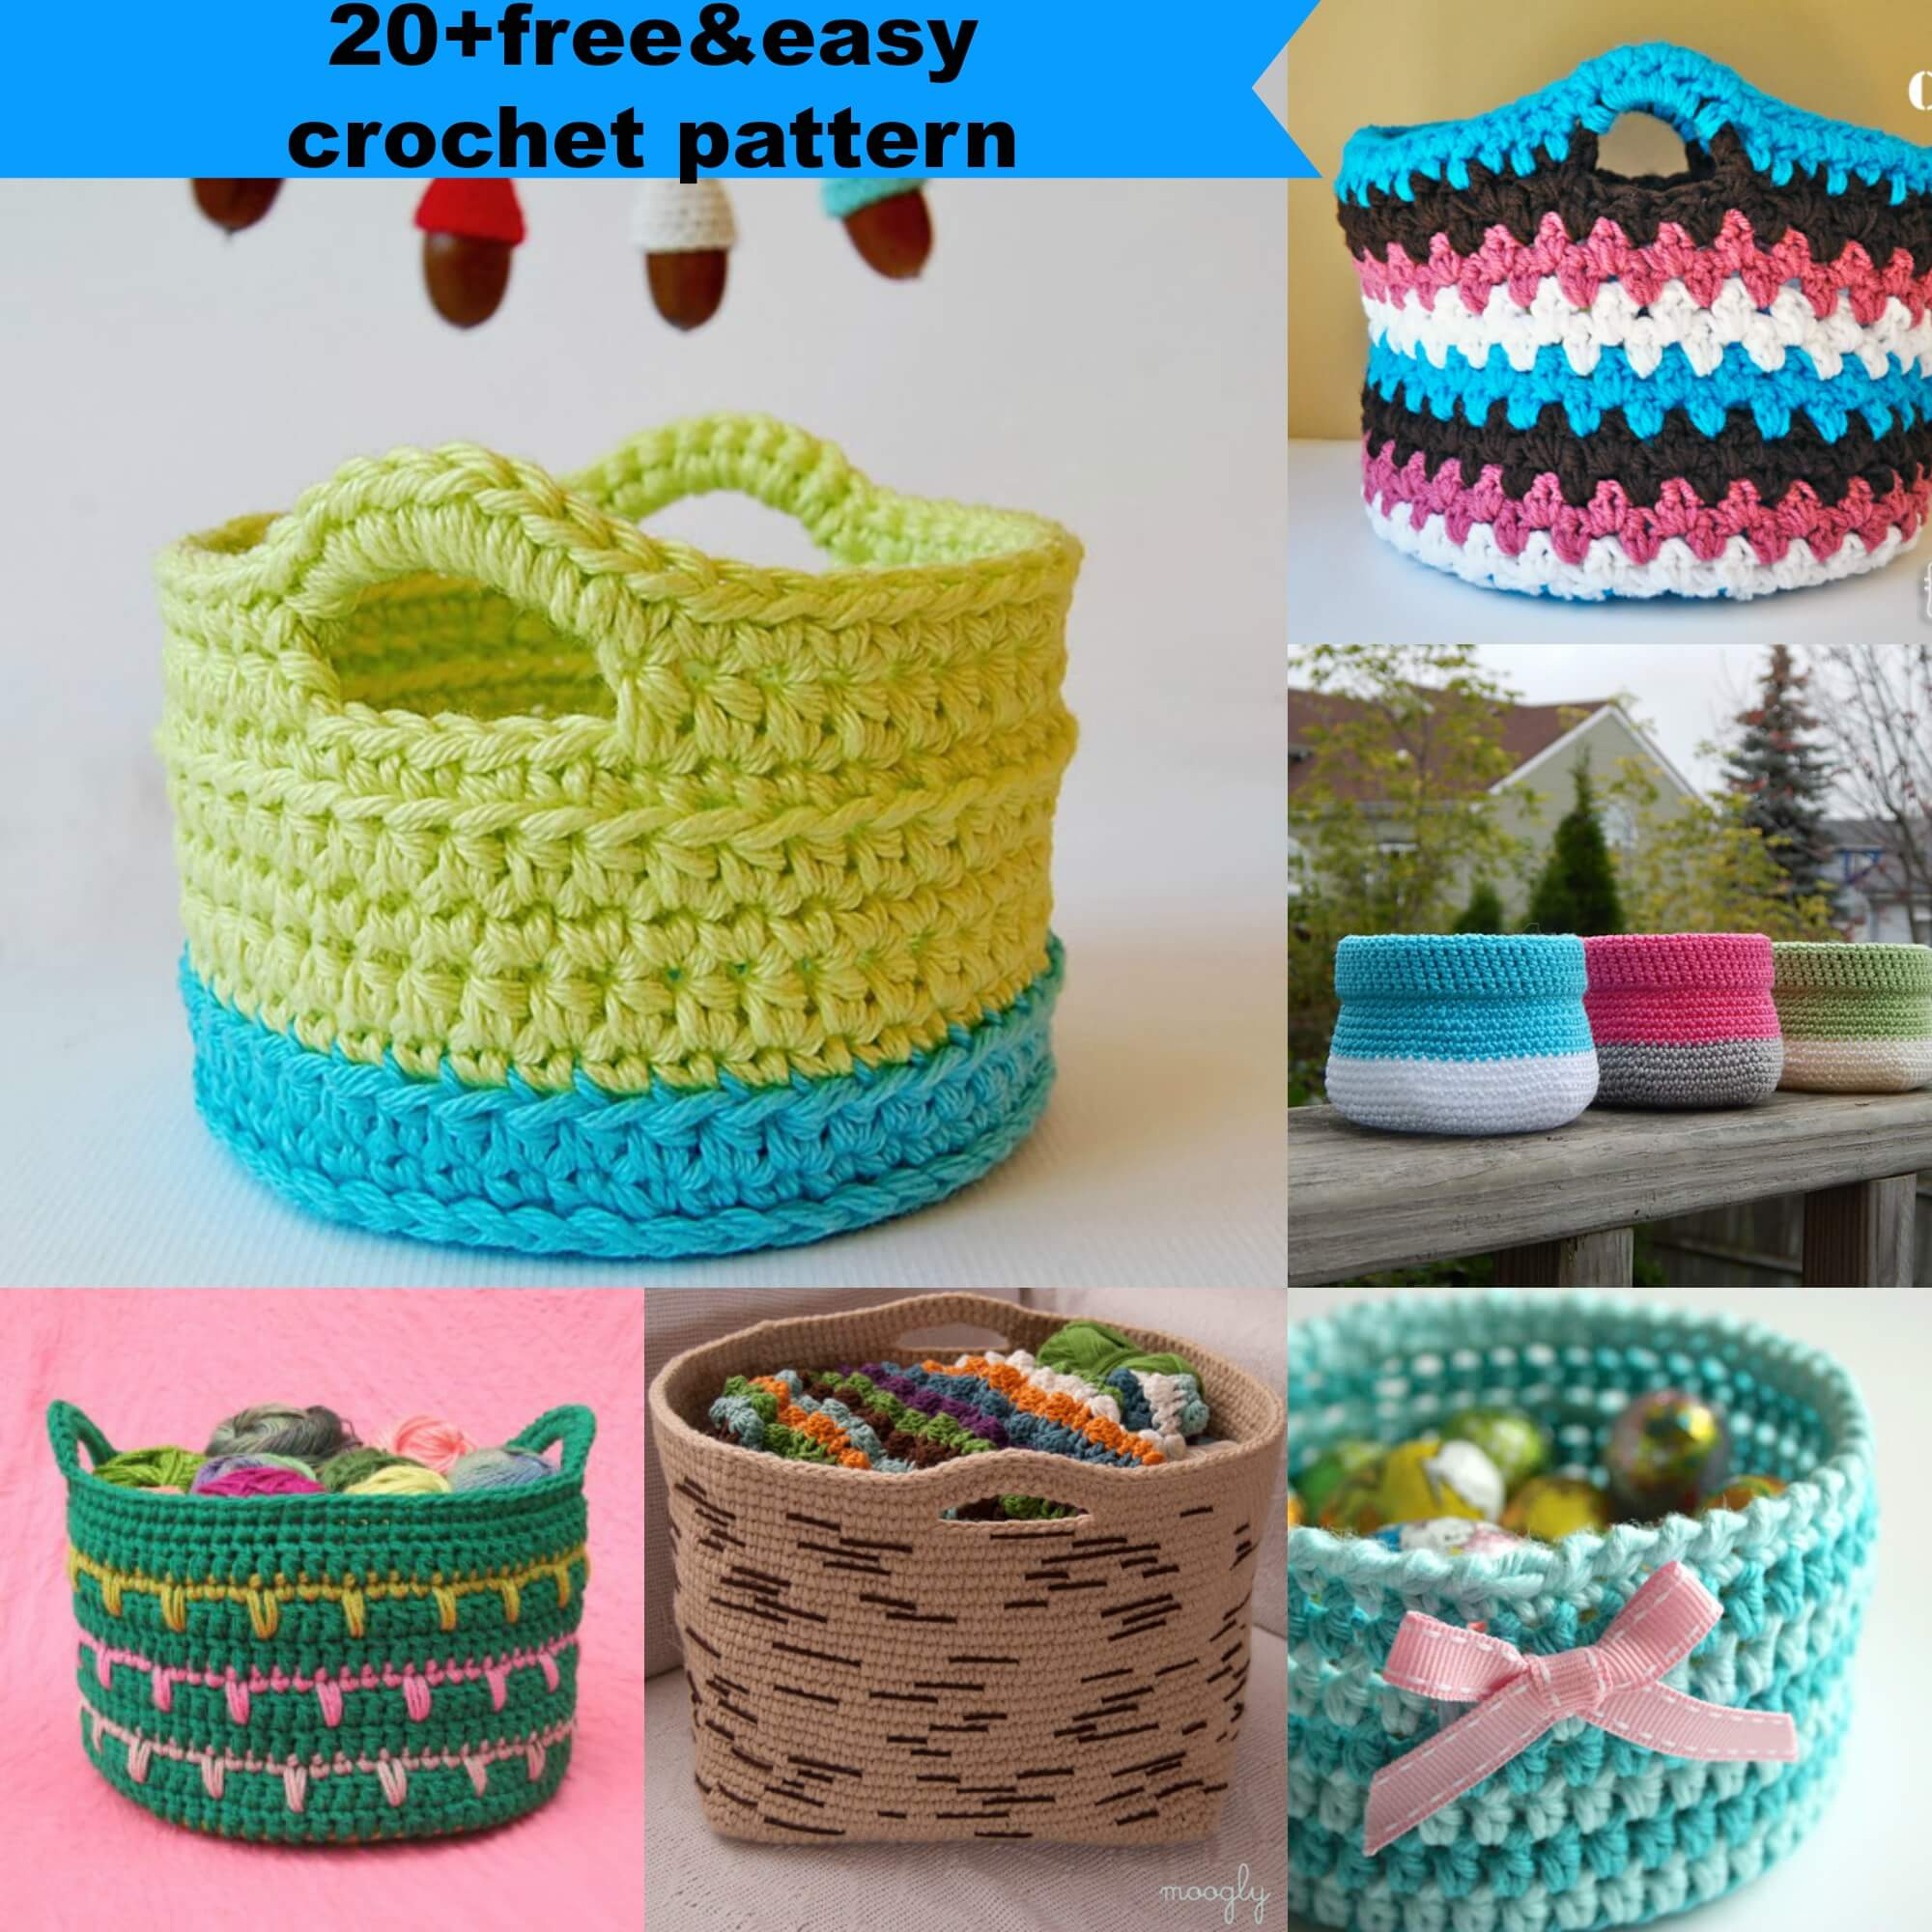 20+freeu0026easy crochet pattern by jennyandteddy & 23 free u0026easy crochet baskets patterns